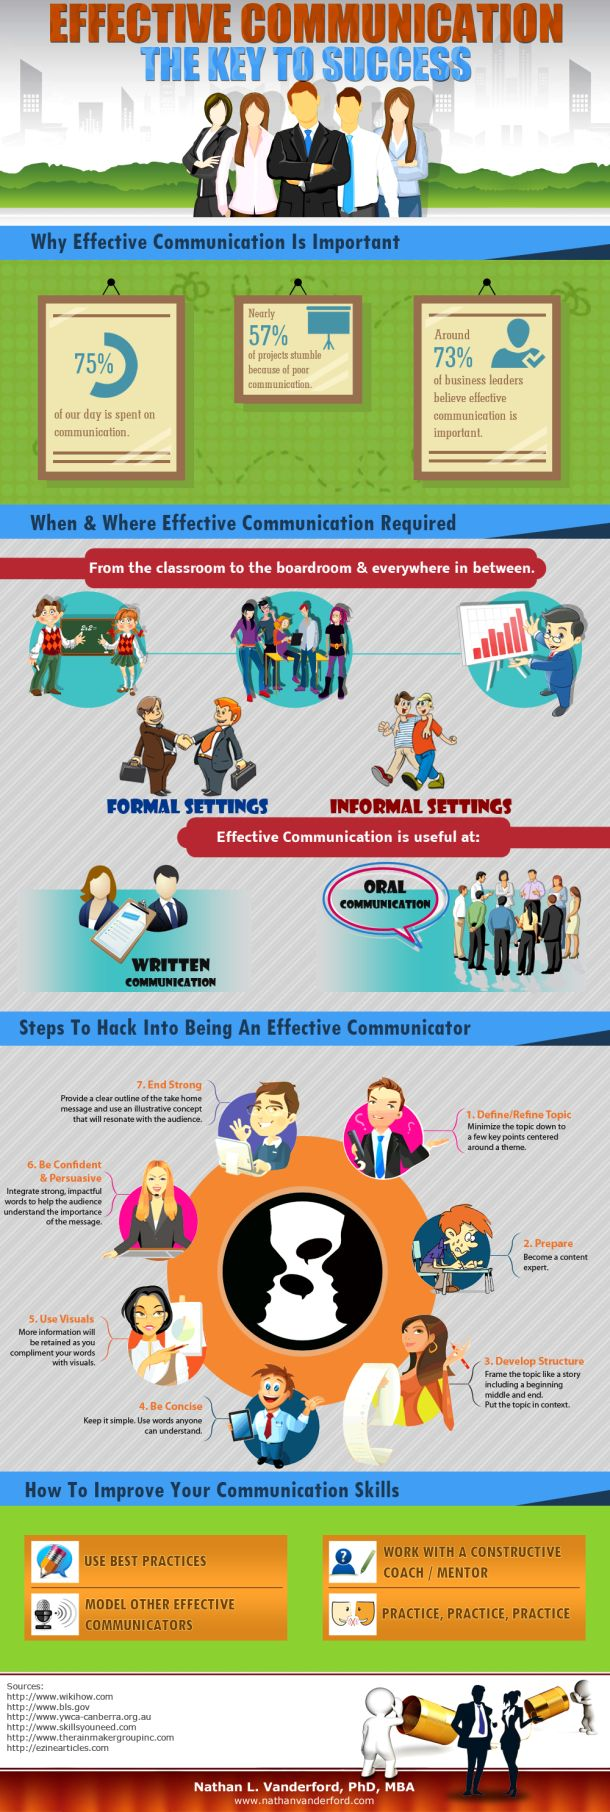 best ideas about effective communication effective communication the key to success infographic